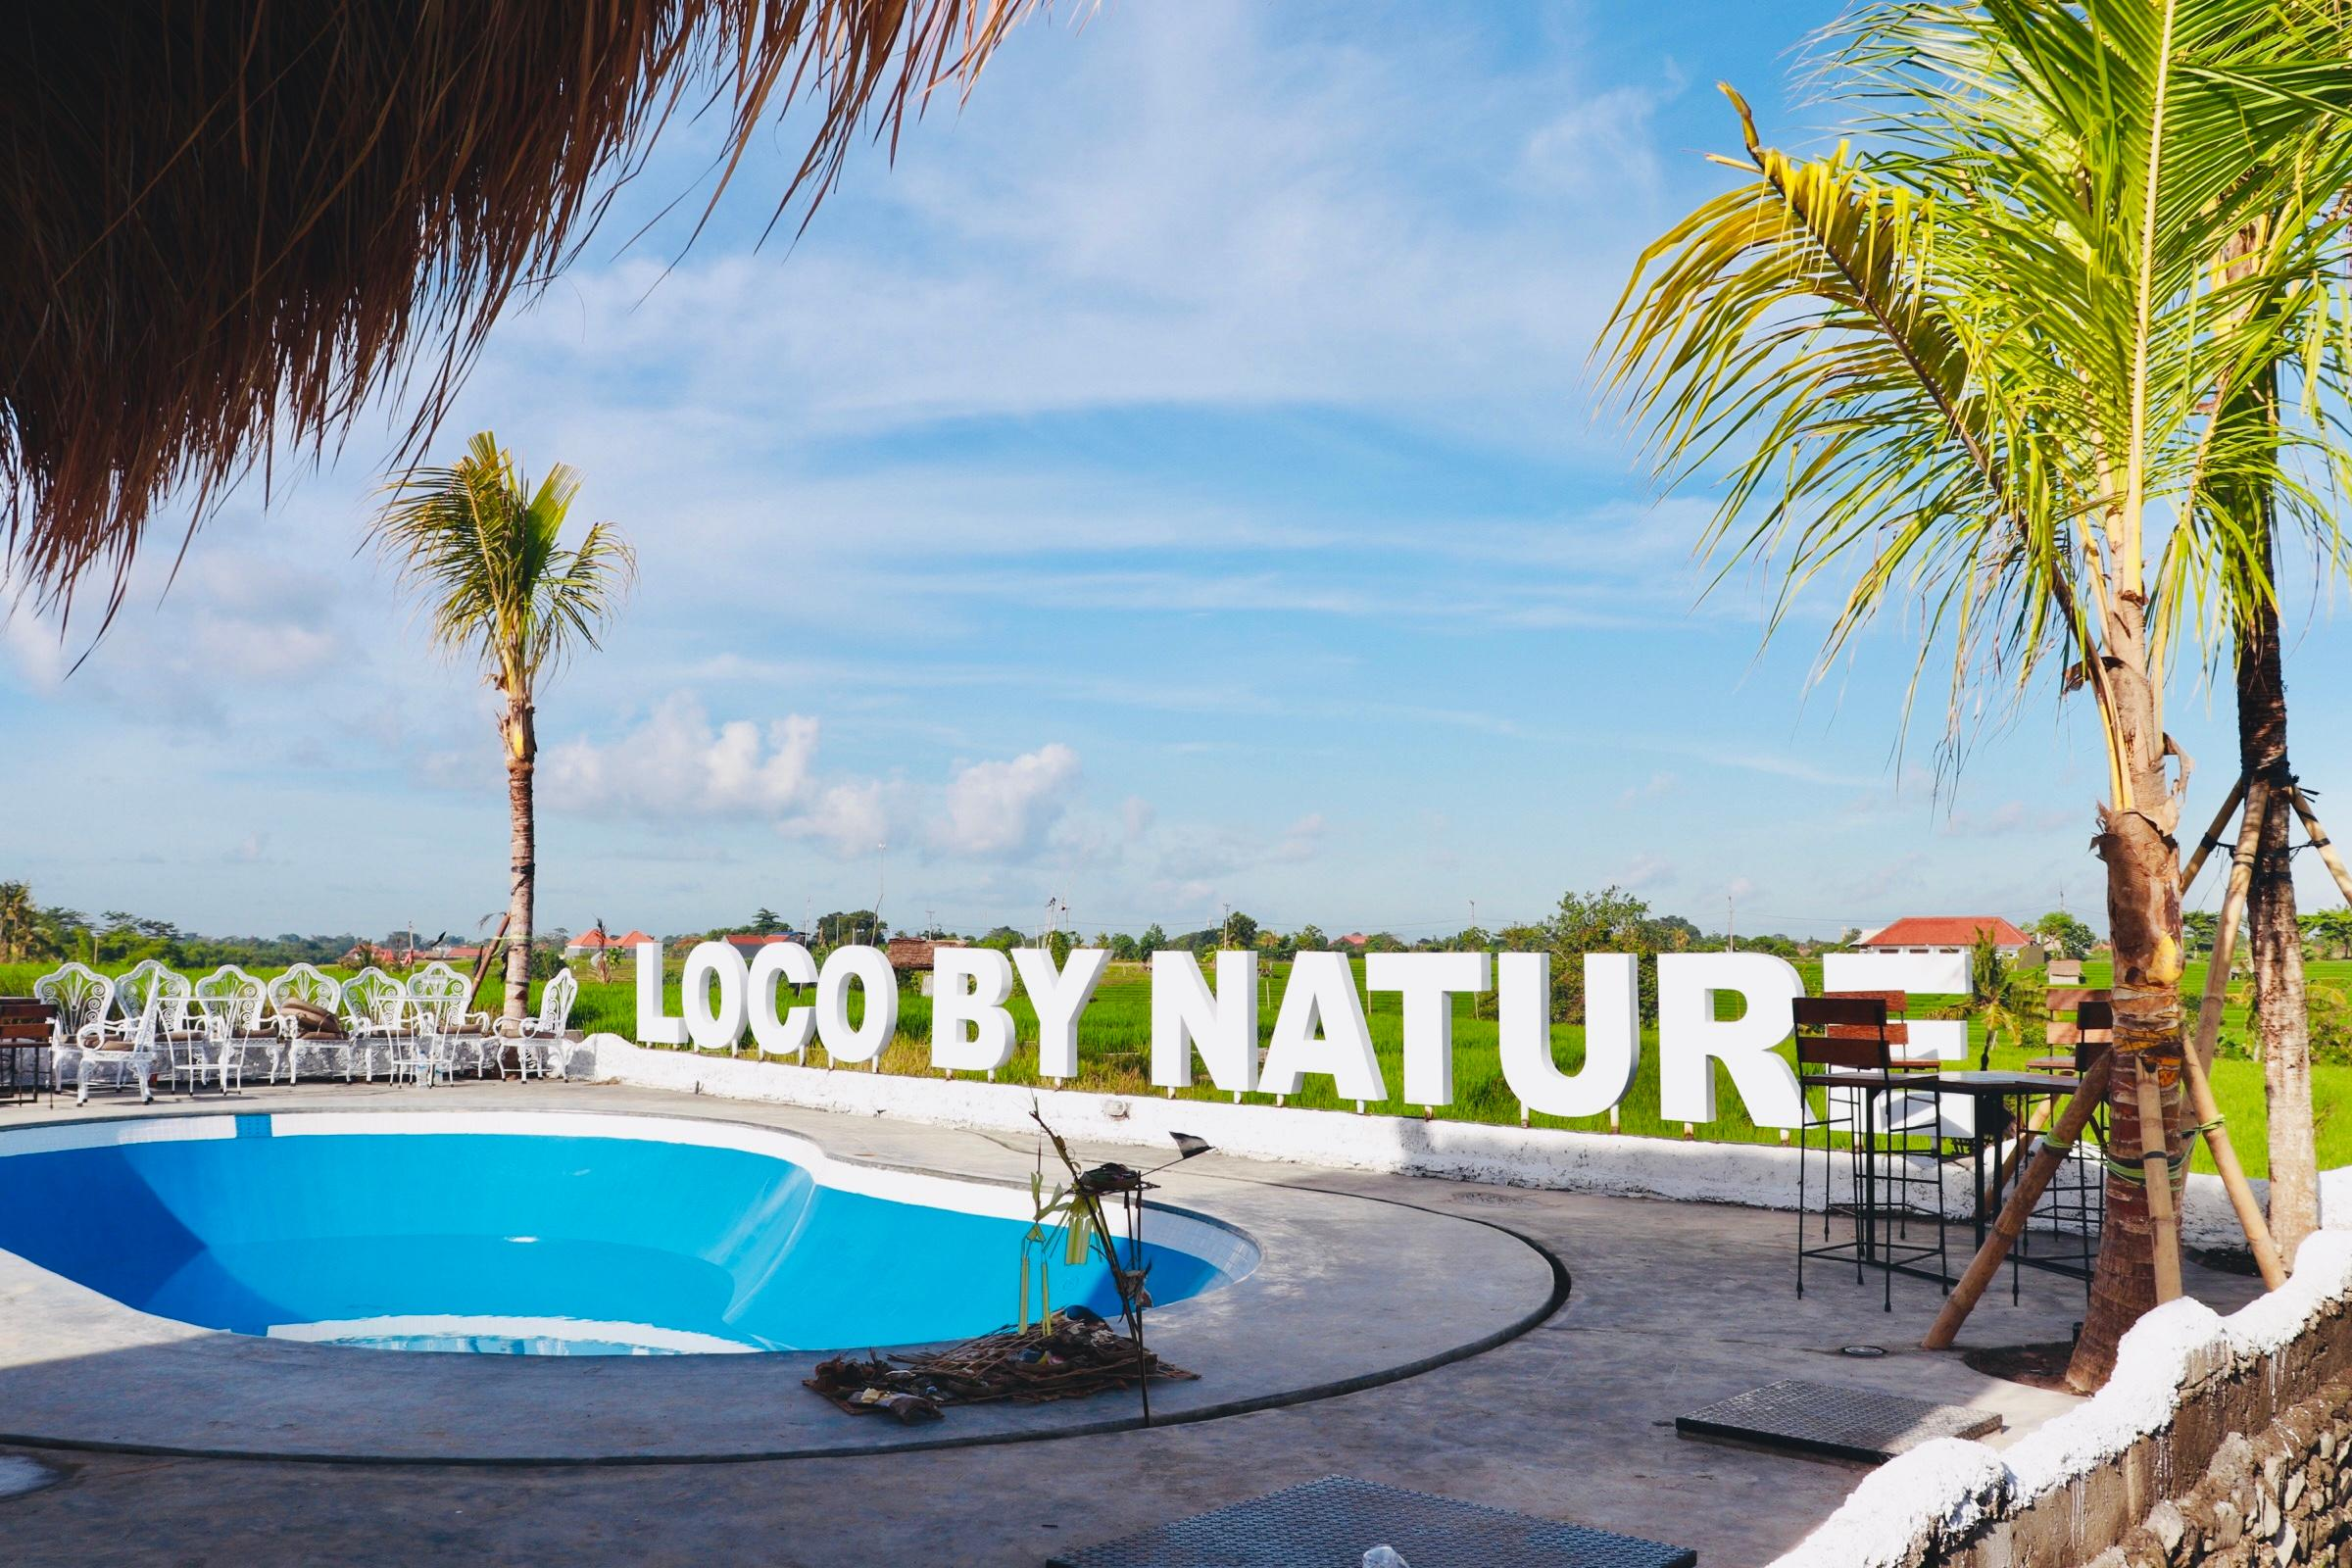 Loco by Nature